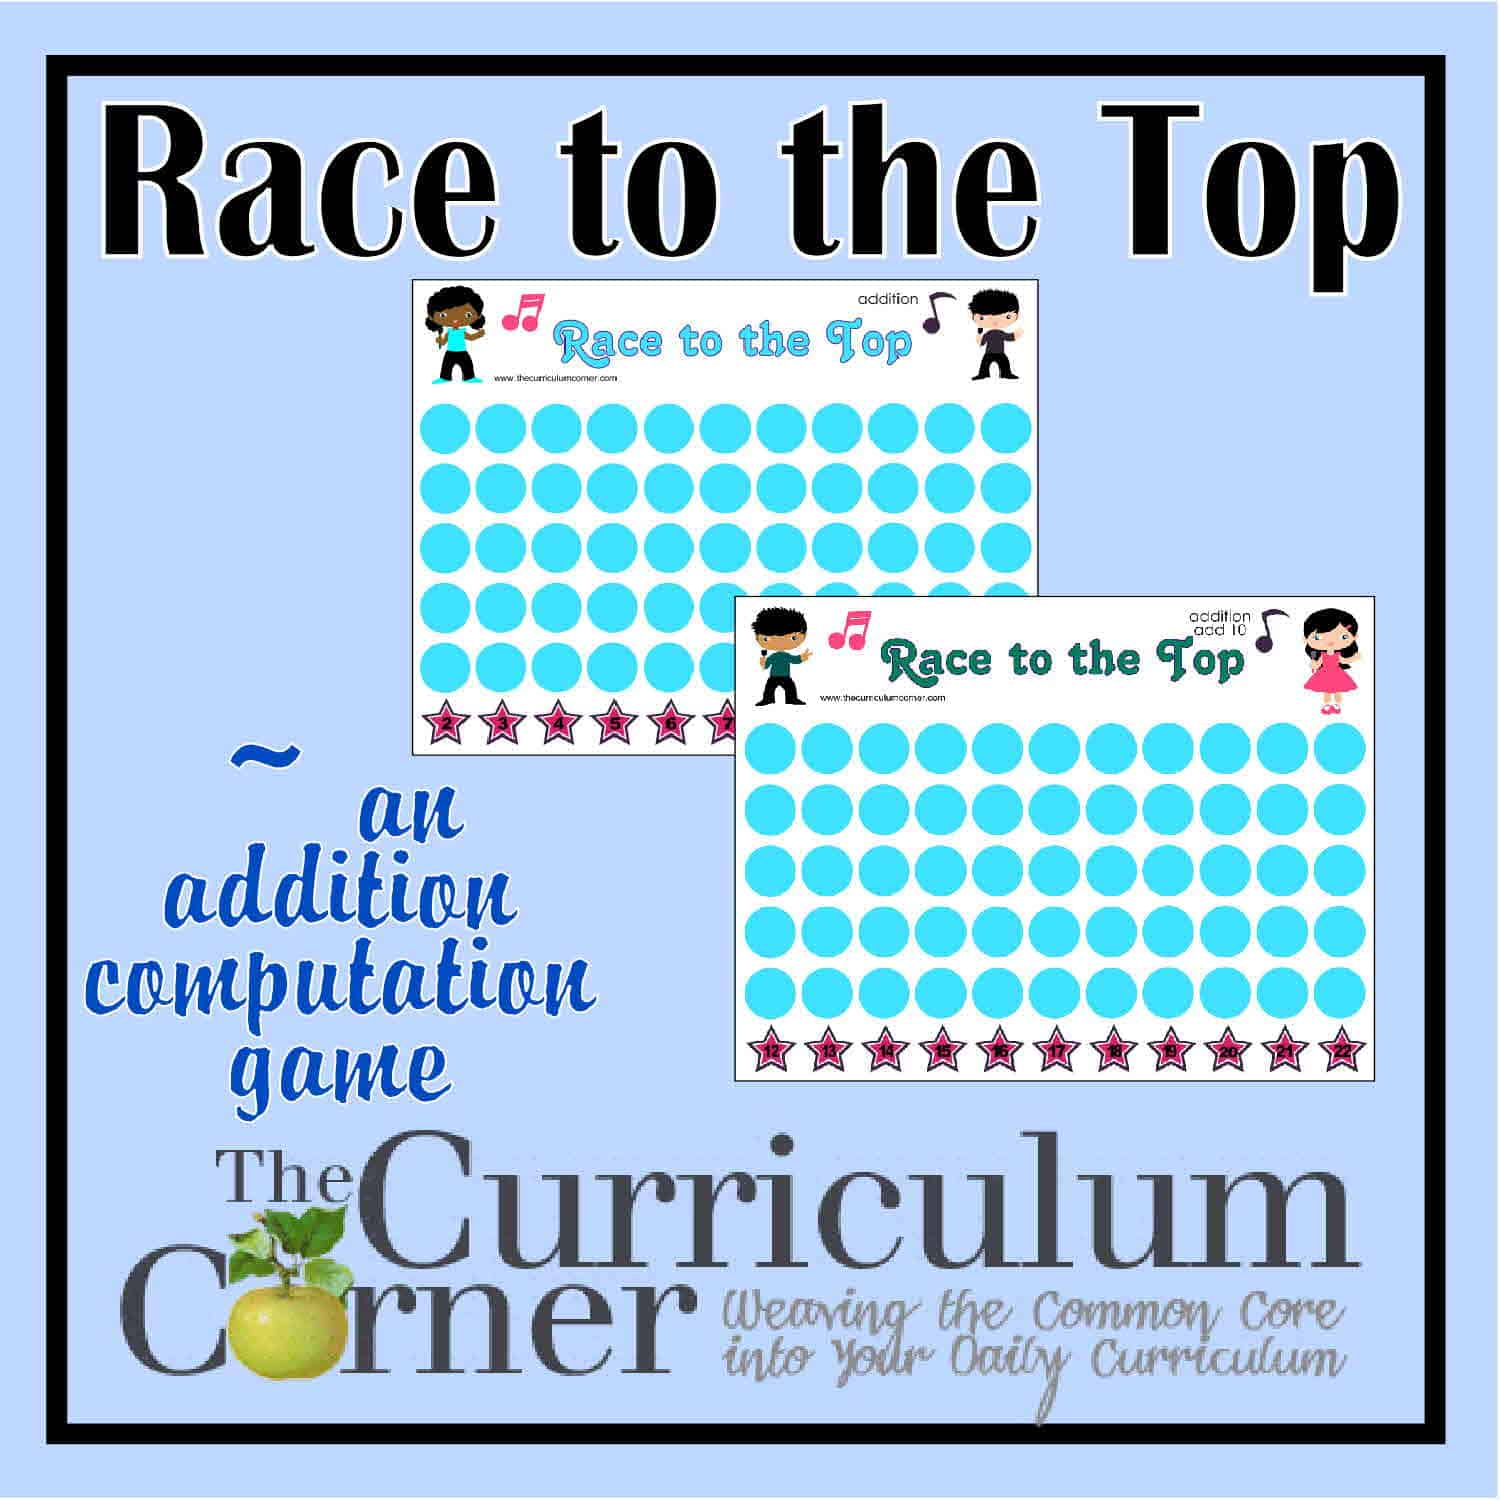 Math Facts Archives - Page 9 of 13 - The Curriculum Corner 123